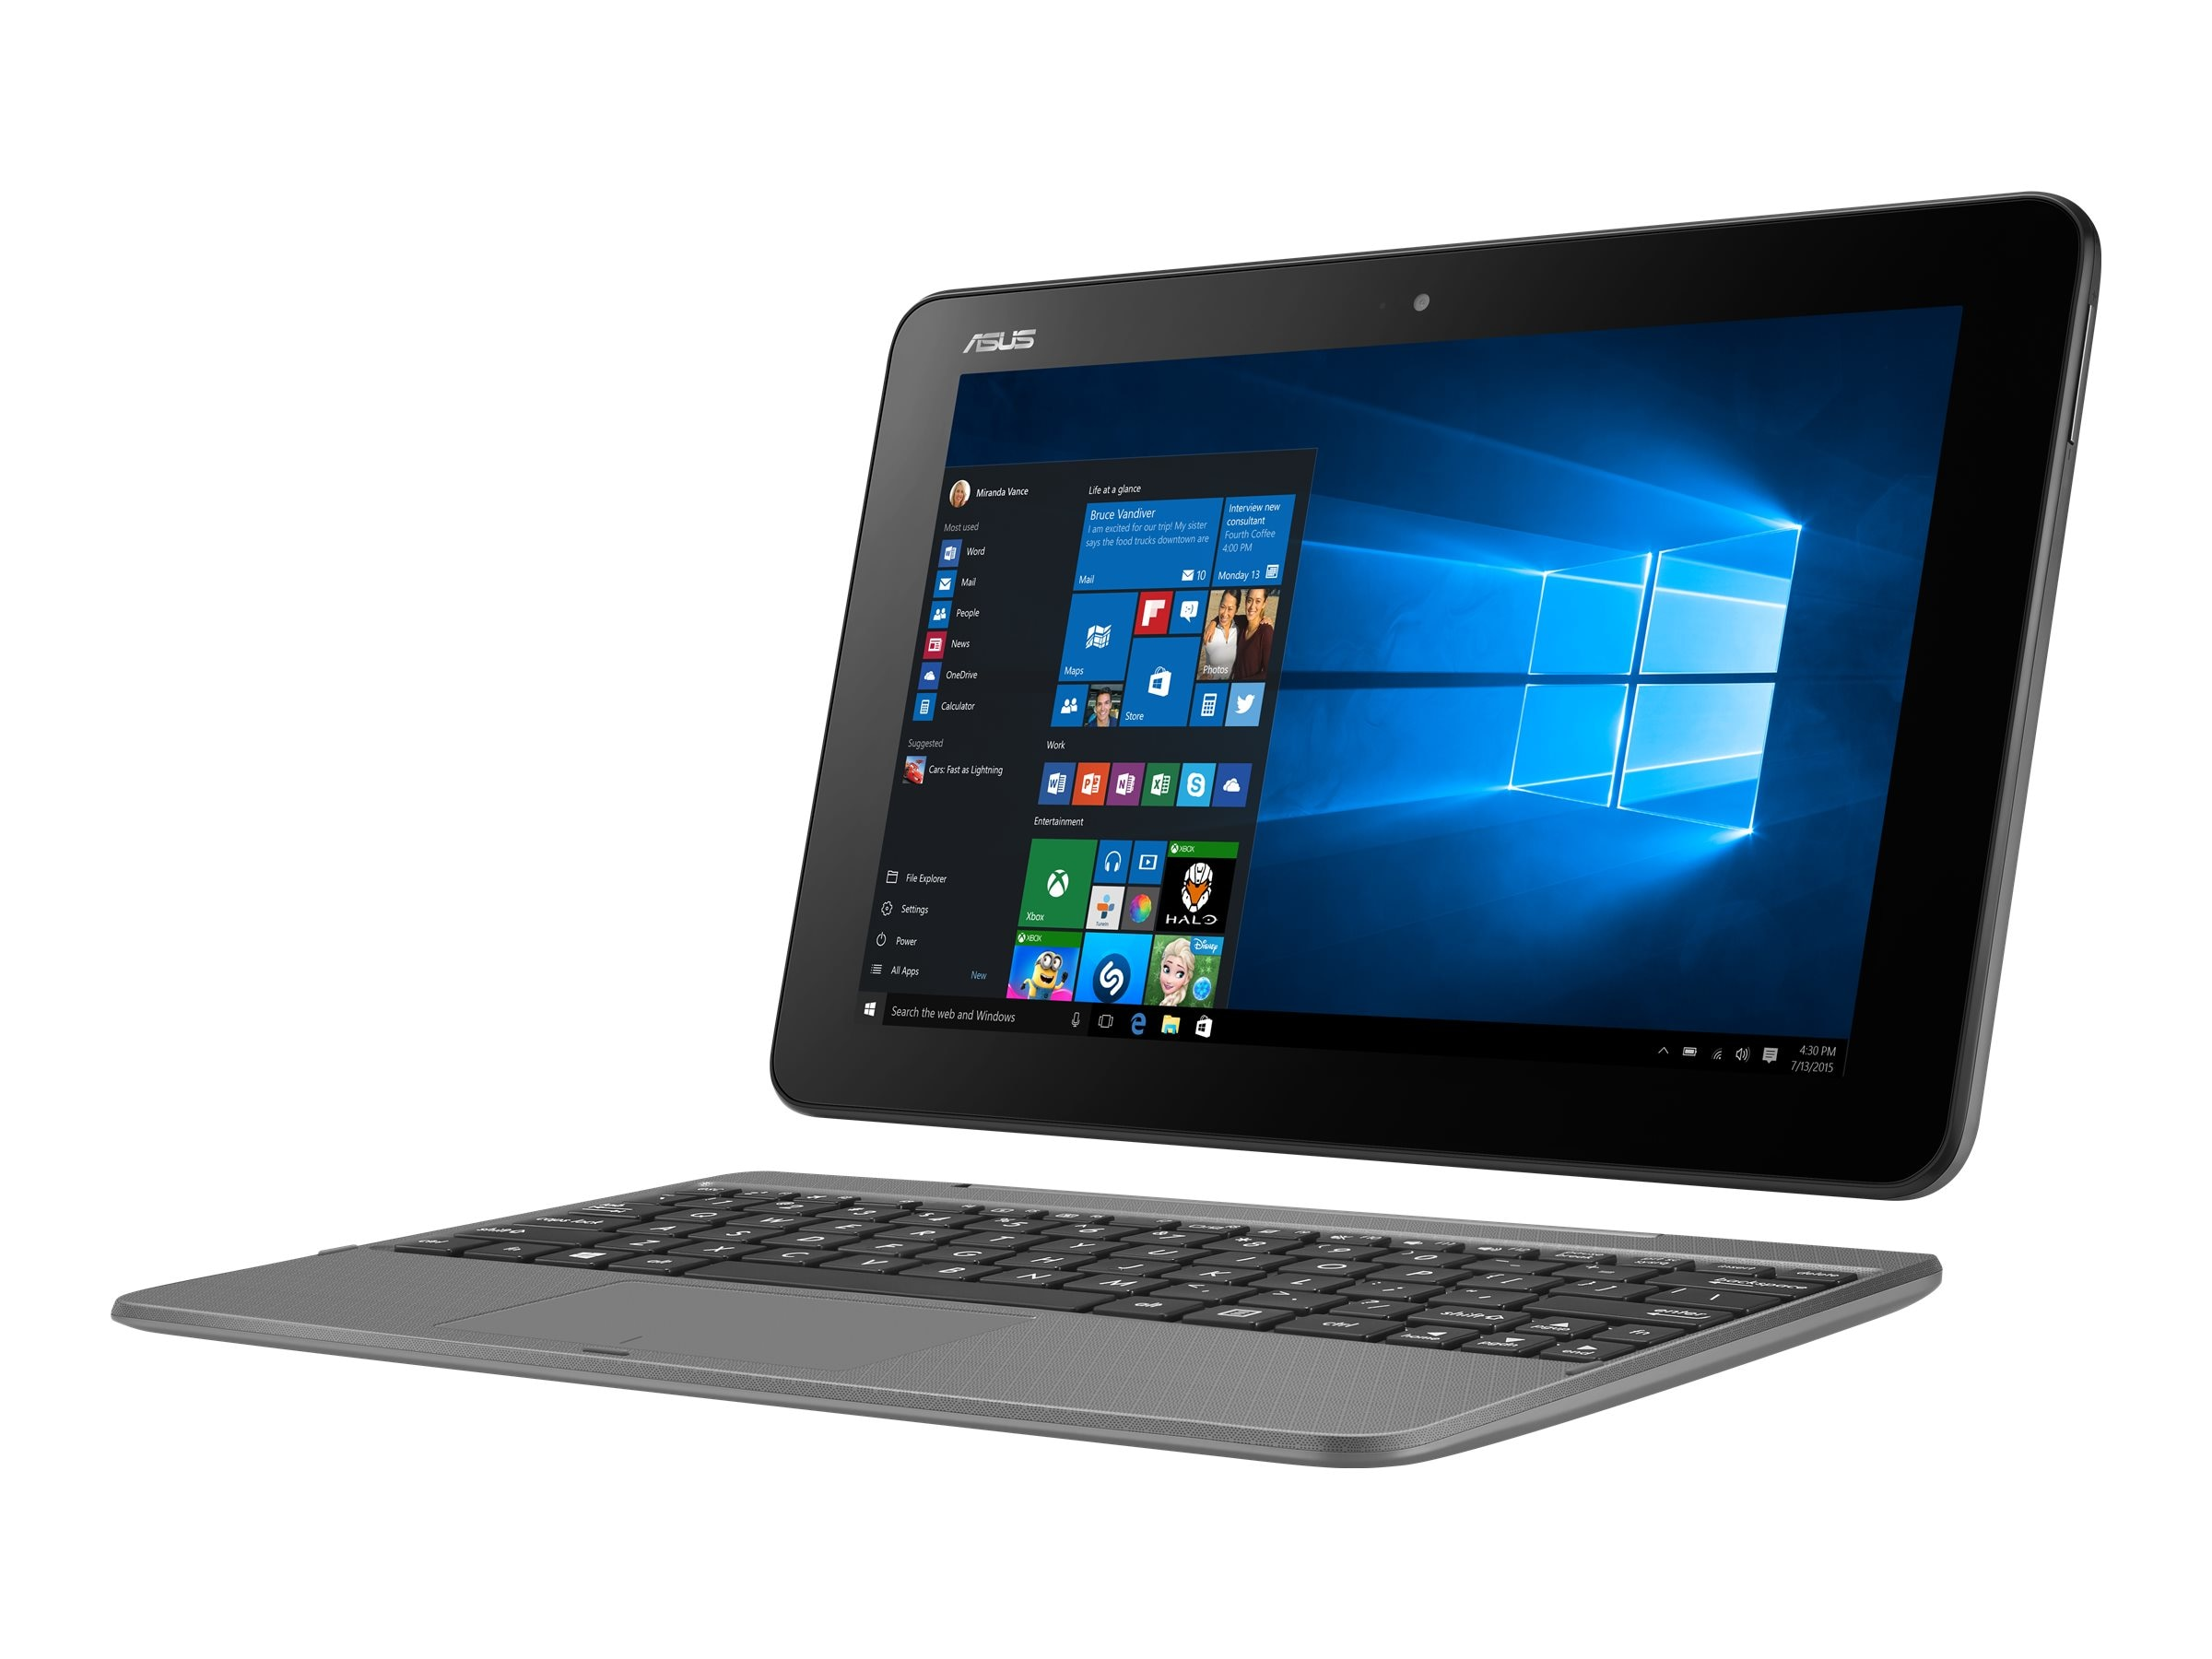 Asus Transformer book T101HA-C4 Atom x5-Z8500 1.44GHz 4GB 64GB abgn BT 2xWC 10.1 WXGA MT W10H64 Gray